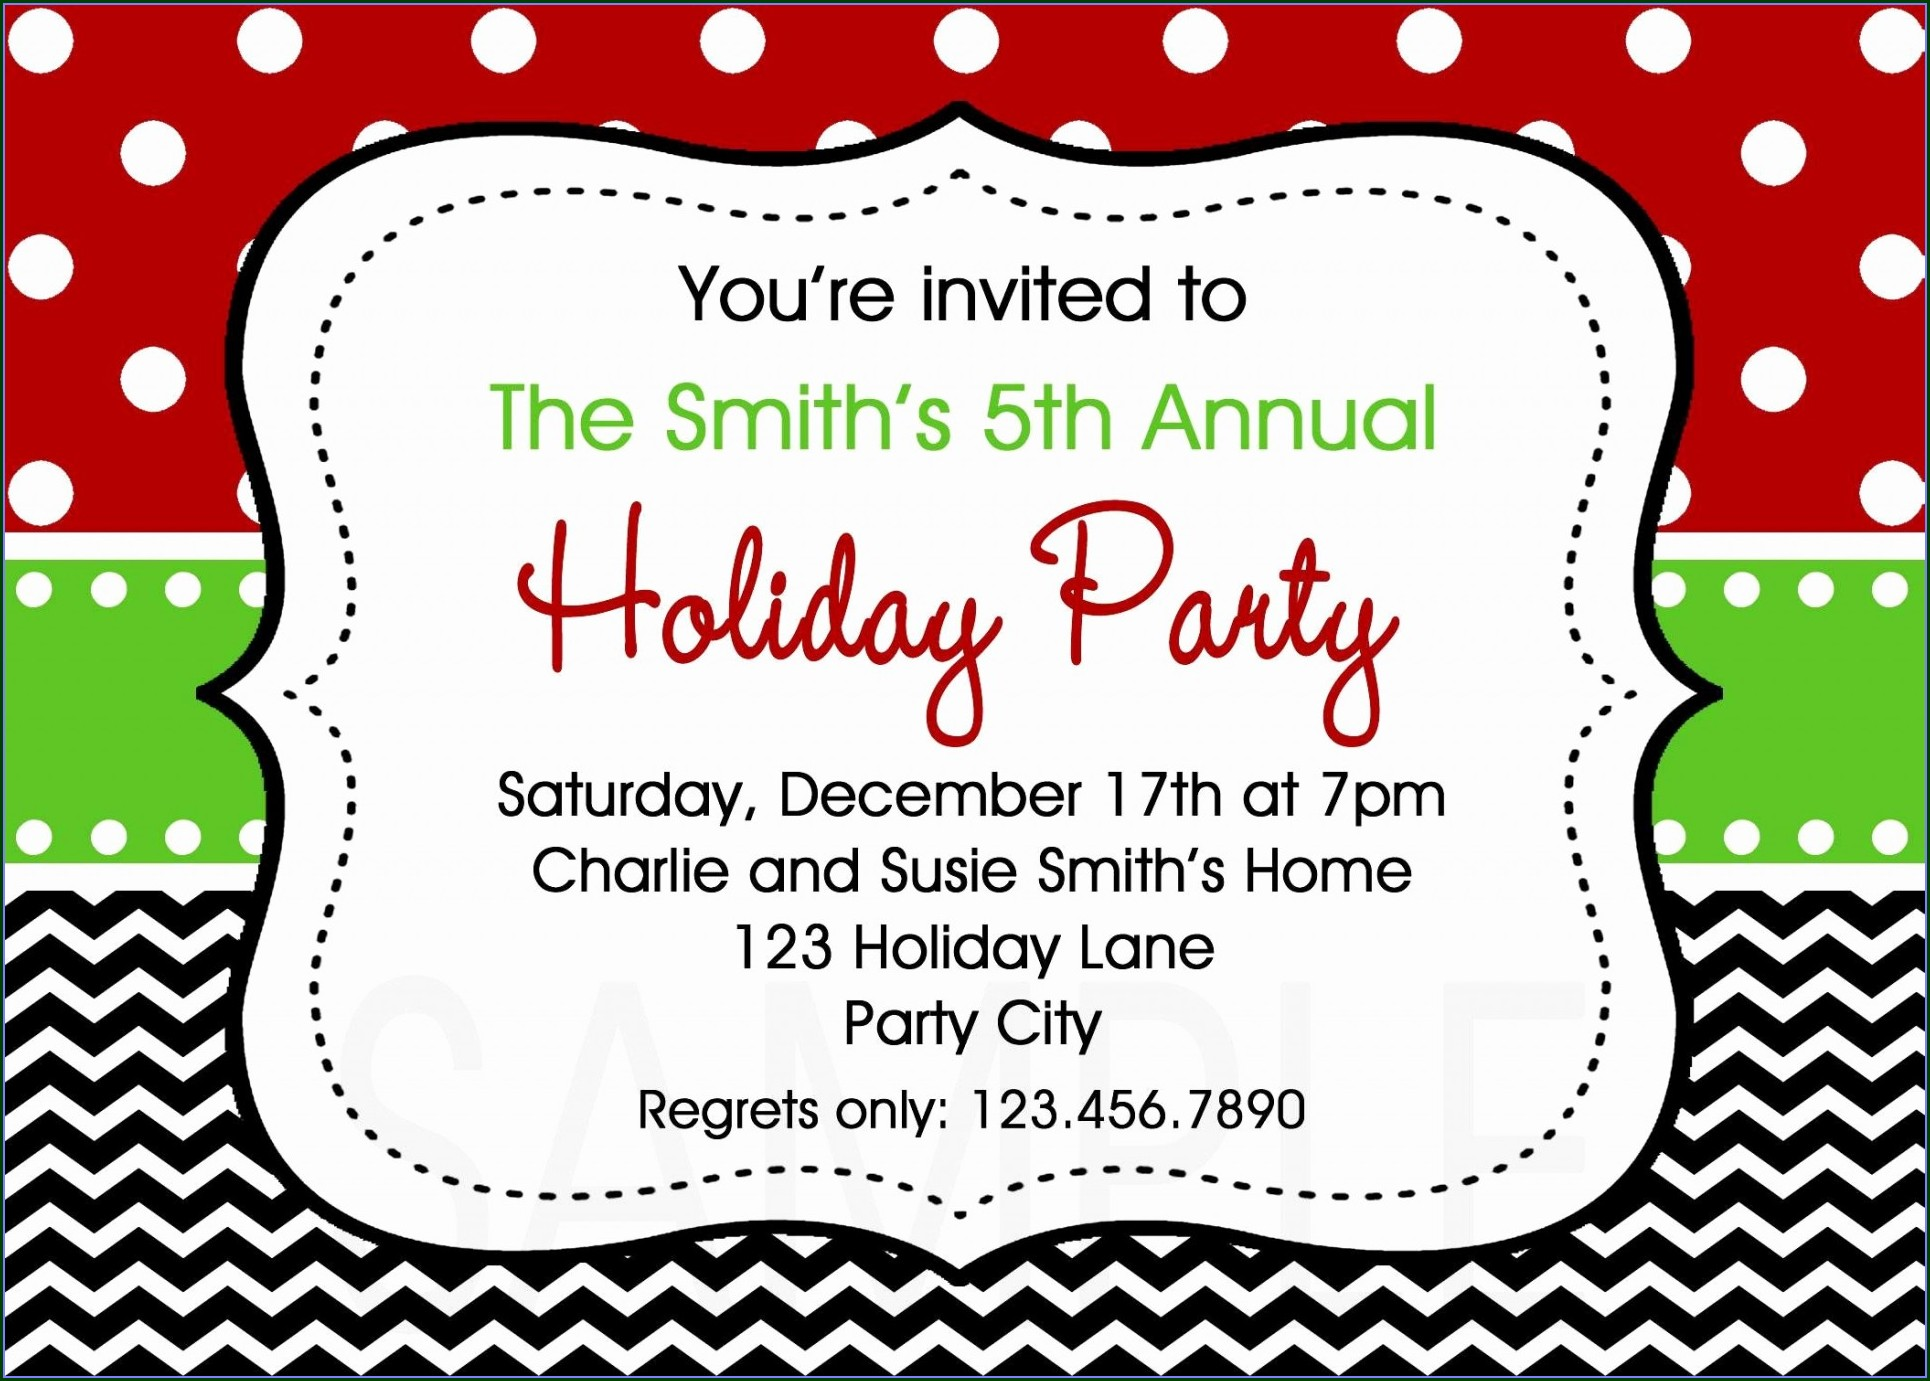 Company Holiday Party Invitation Template